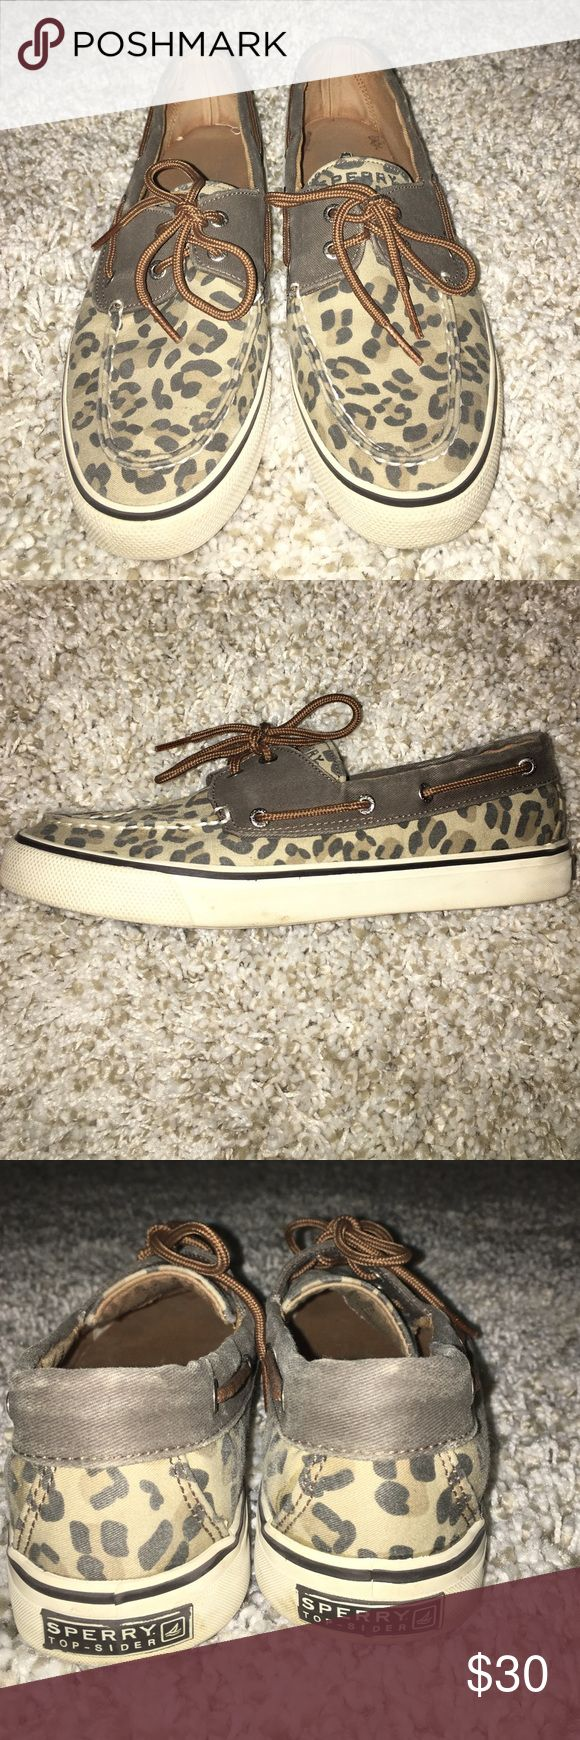 cheetah print sperry boat shoes These are cheetah printed sperry shoes size 8. They are lightly worn but for the most part in perfect condition! Sperry Top-Sider Shoes Flats & Loafers